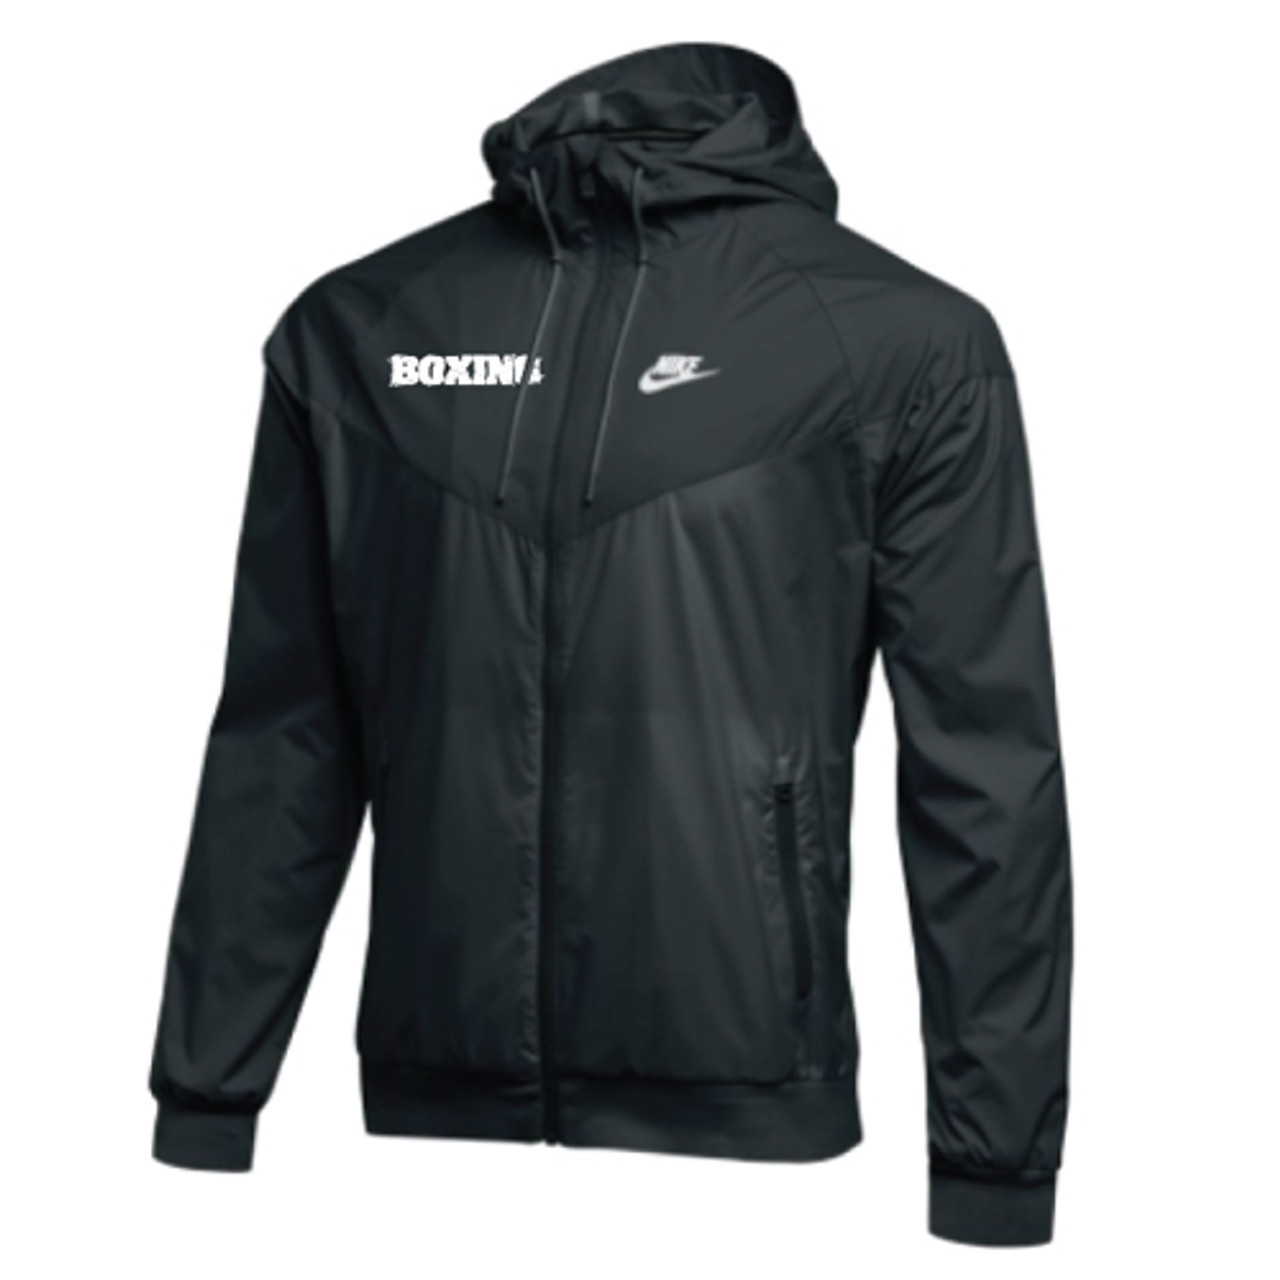 Nike windbreaker white black grey